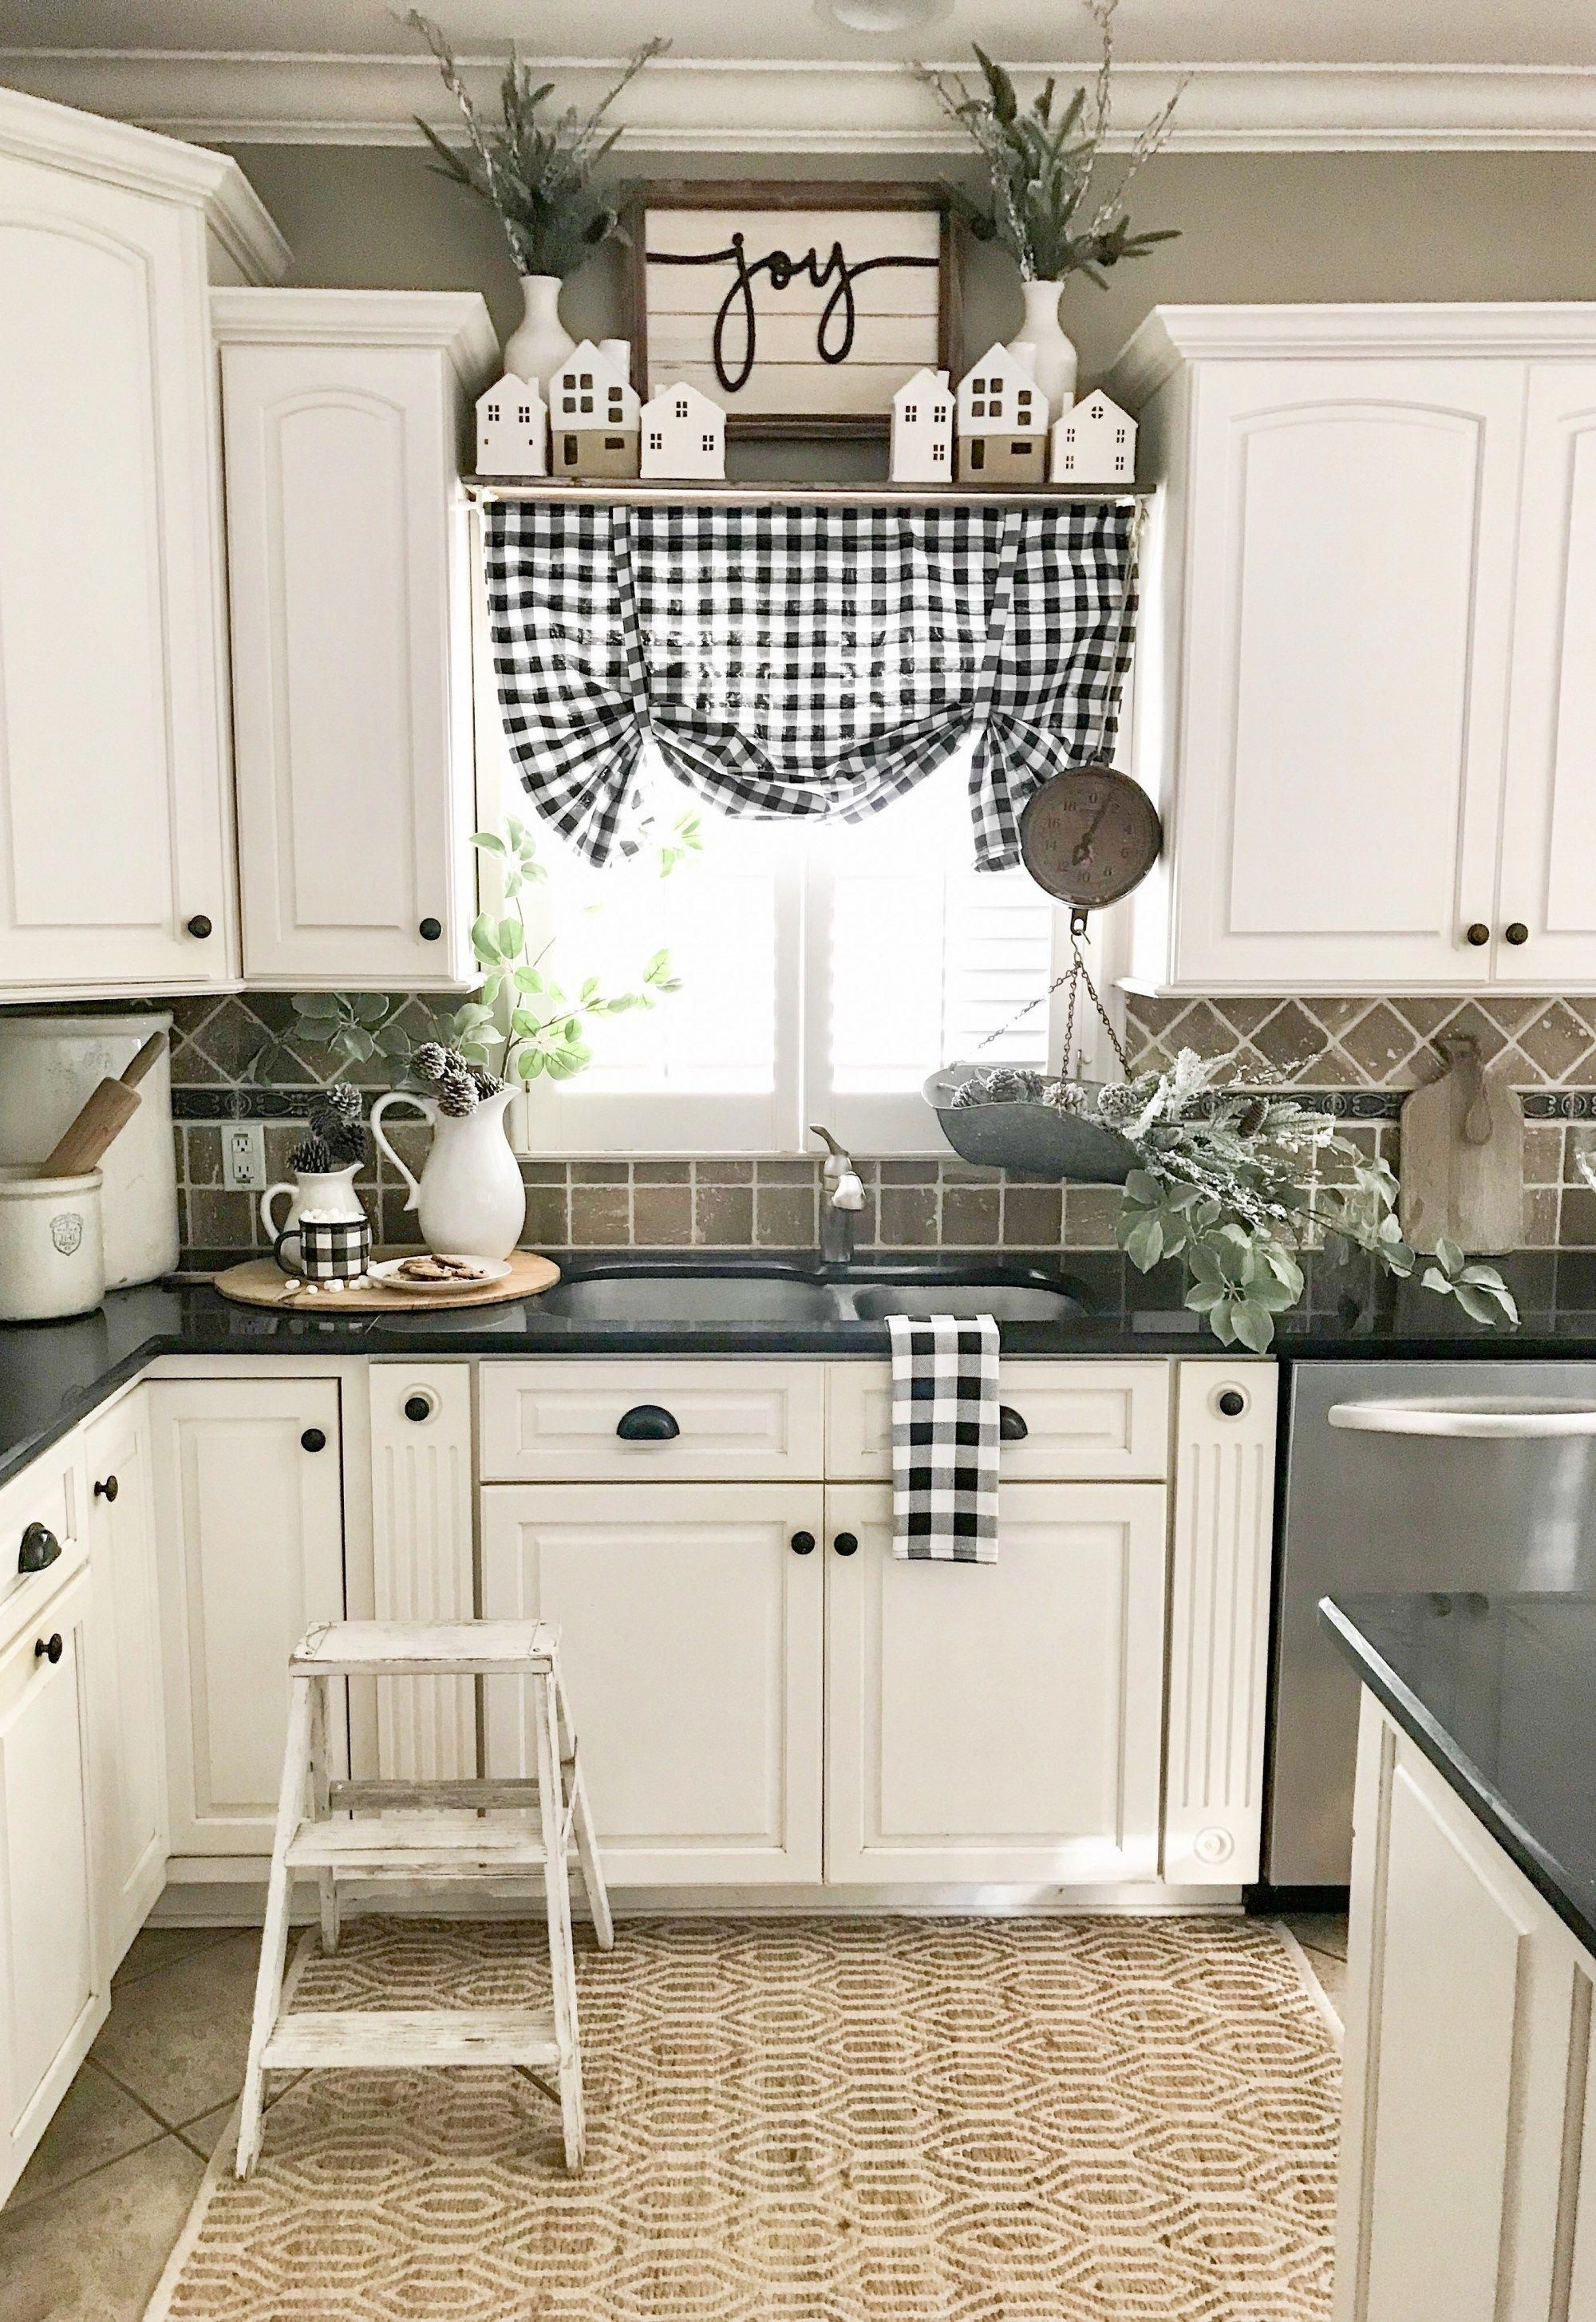 Awesome Kitchen Decor Ideas Farmhouse Kitchen Decor Home Decor